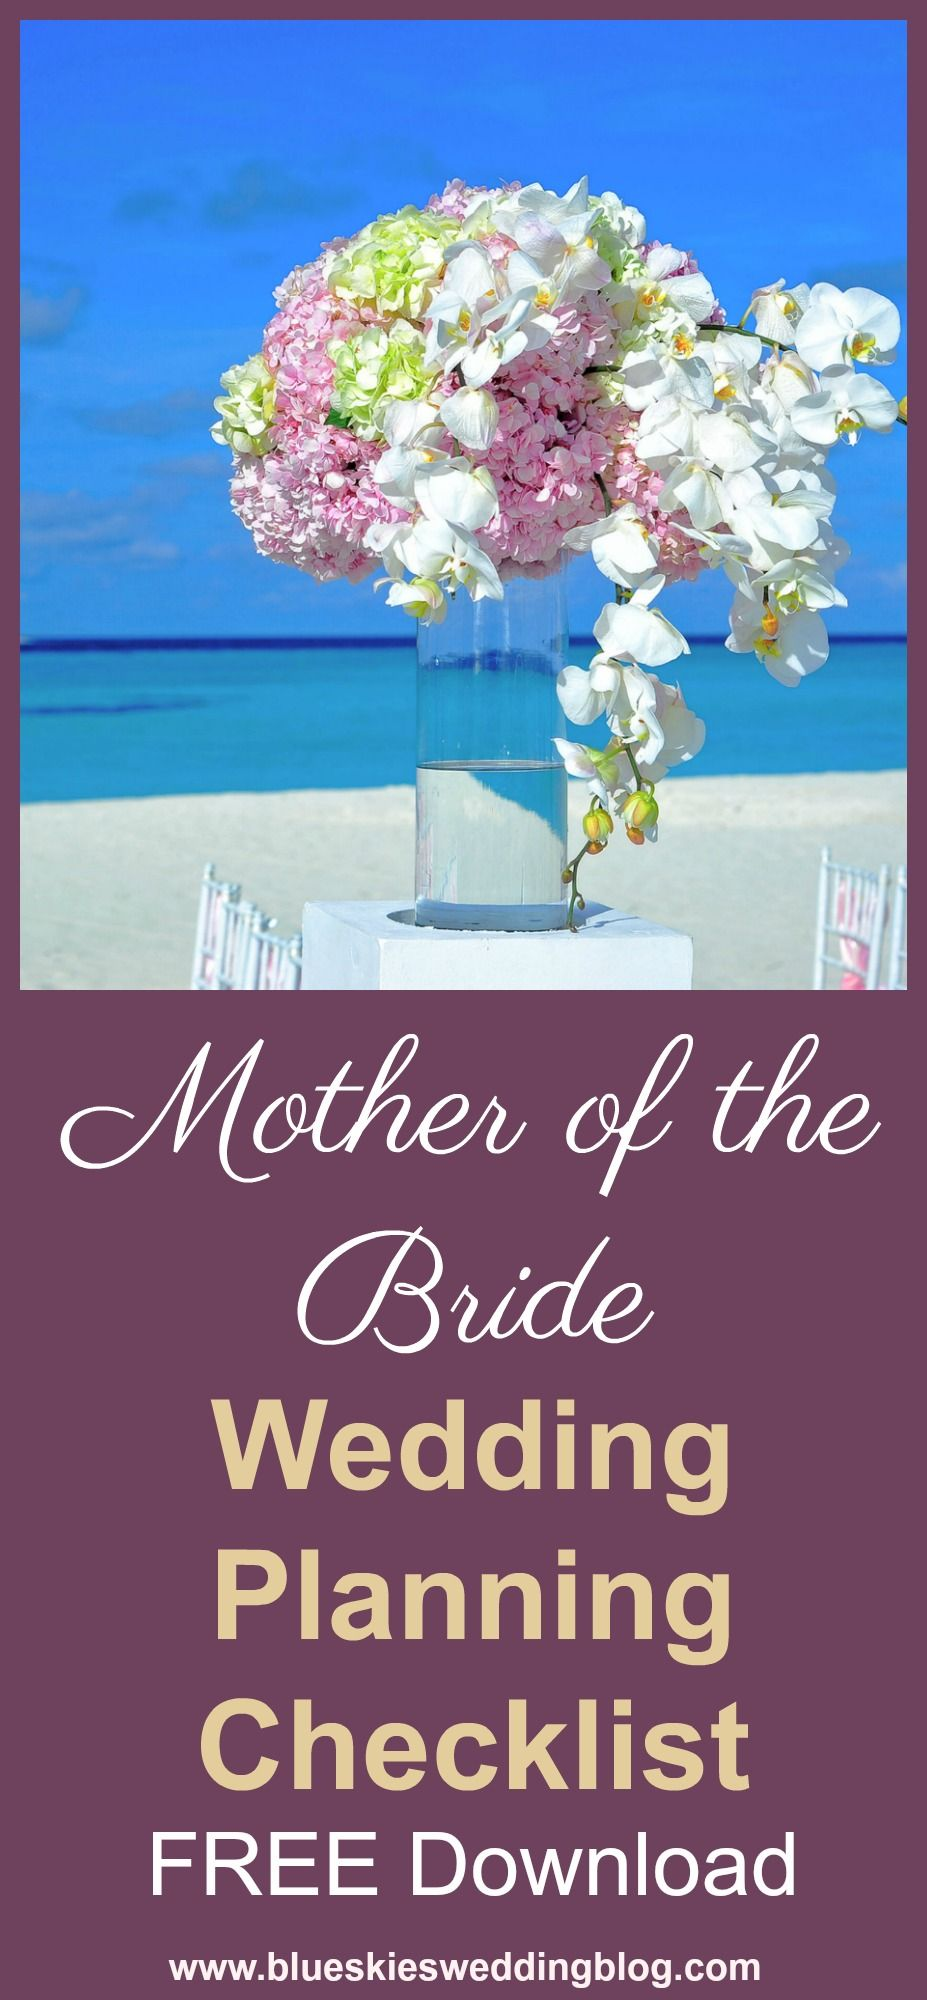 Mother Of The Bride Wedding Planning Checklist 4 Things Every Must Say Free At Blue Skies We Have Created